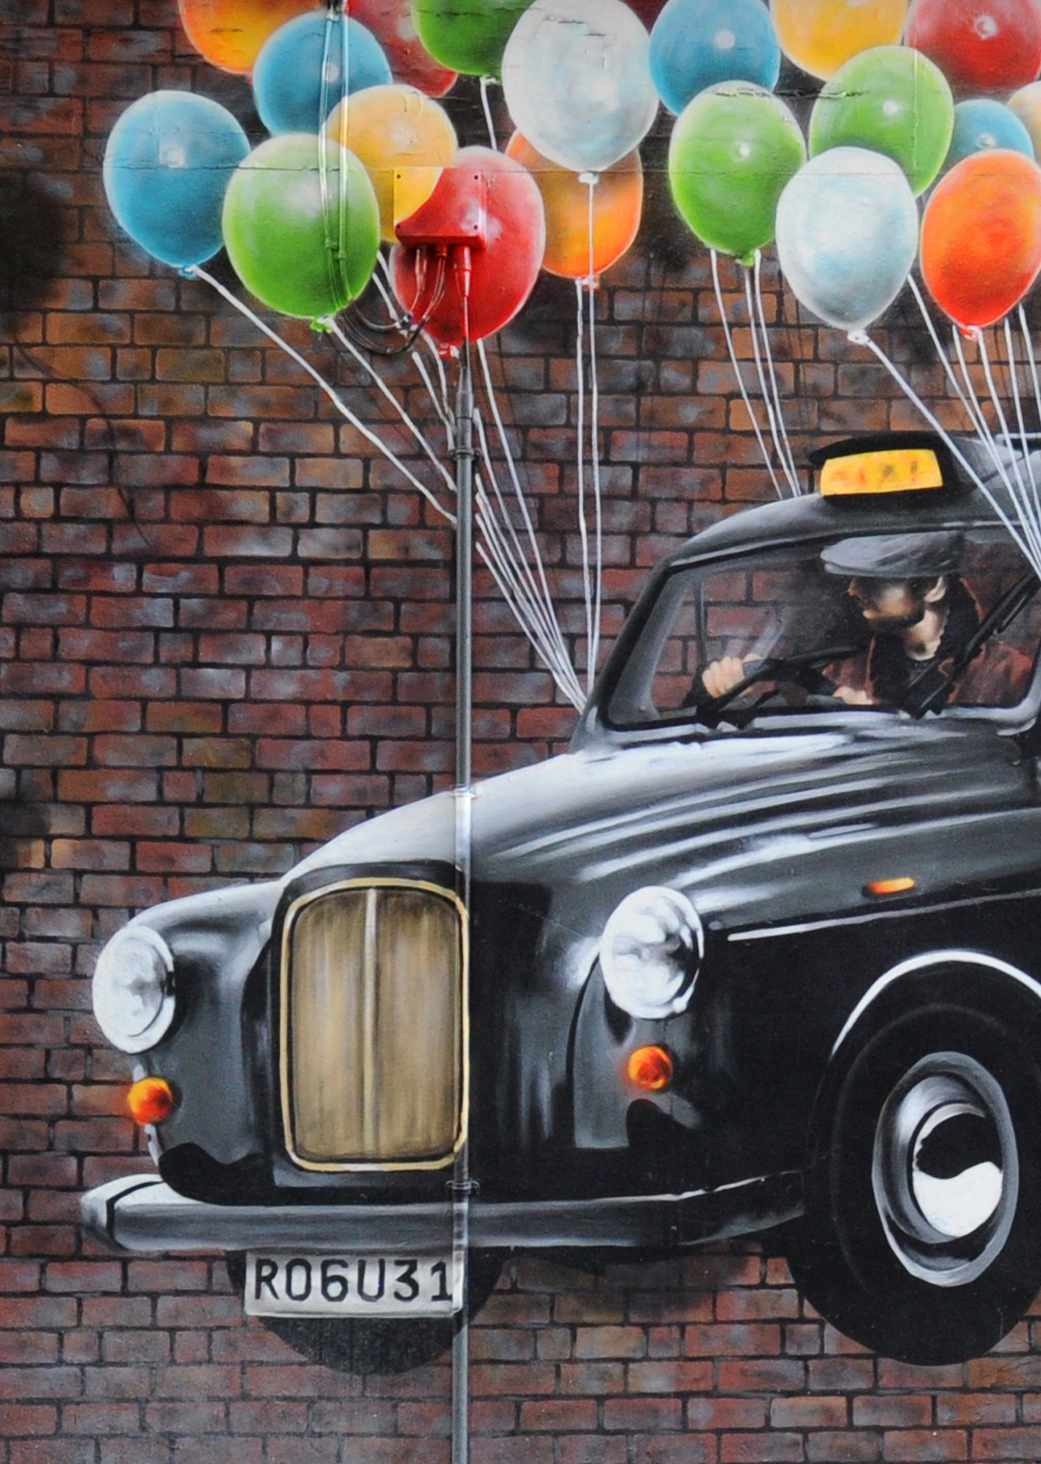 Mural Trail : The World's Most Economical Taxi